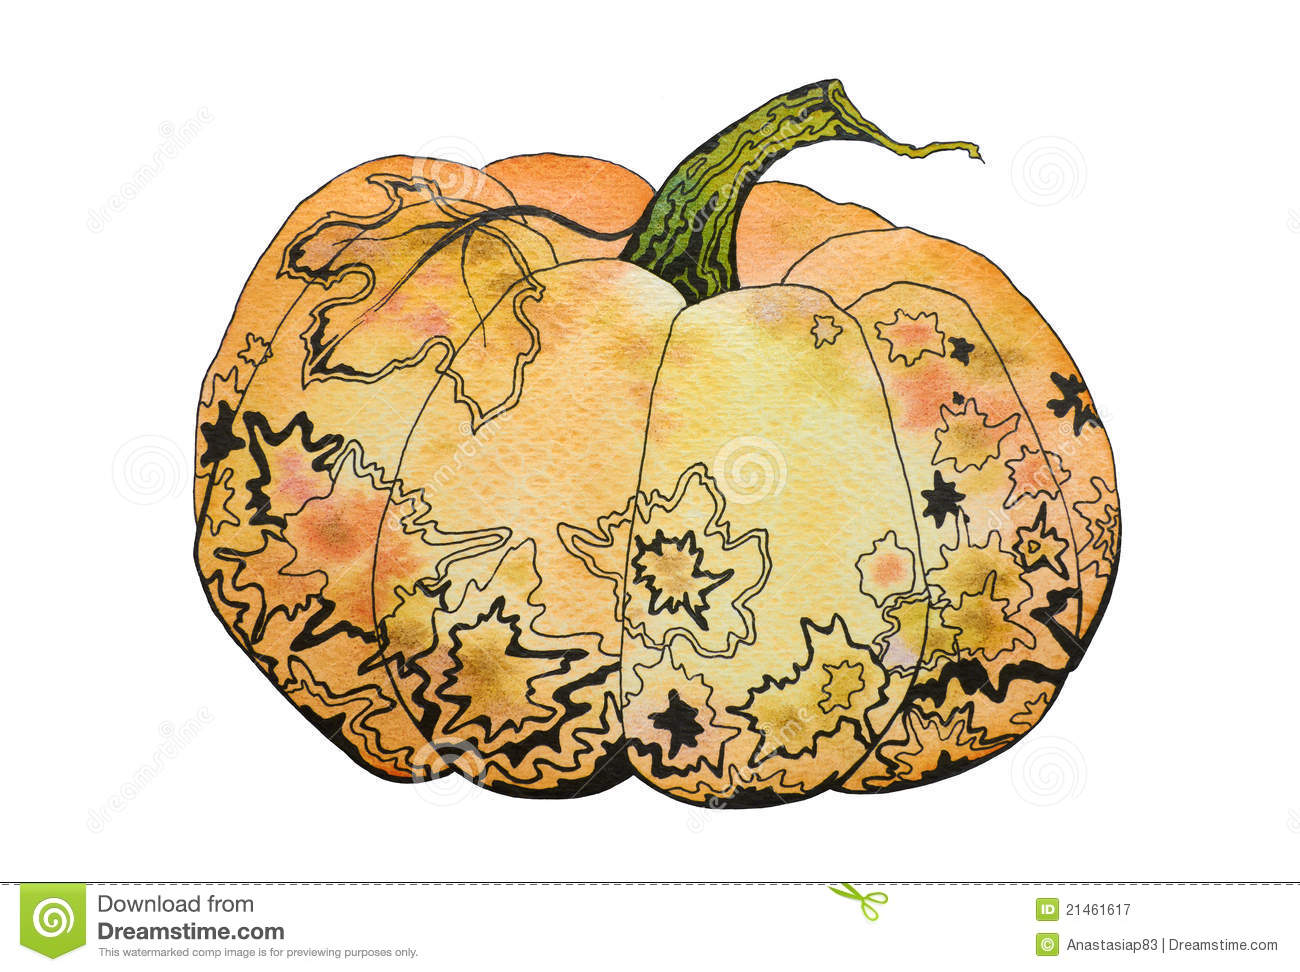 Fall White Pumpkins Wallpaper Watercolor Decorative Pumpkin Royalty Free Stock